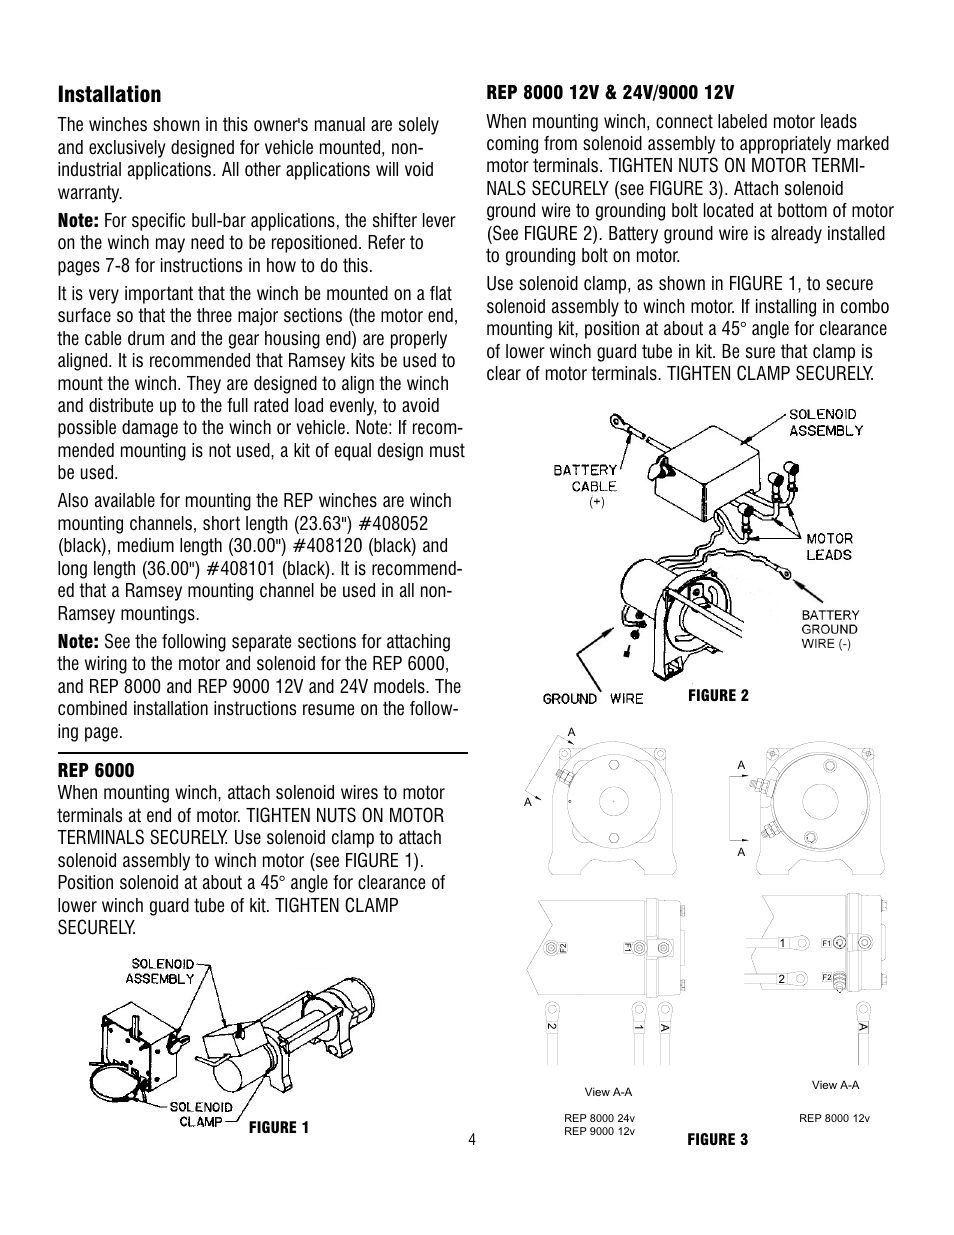 Installation | Ramsey Winch REP-6000/8000/9000 CURRENT User Manual | Page 4  / 16